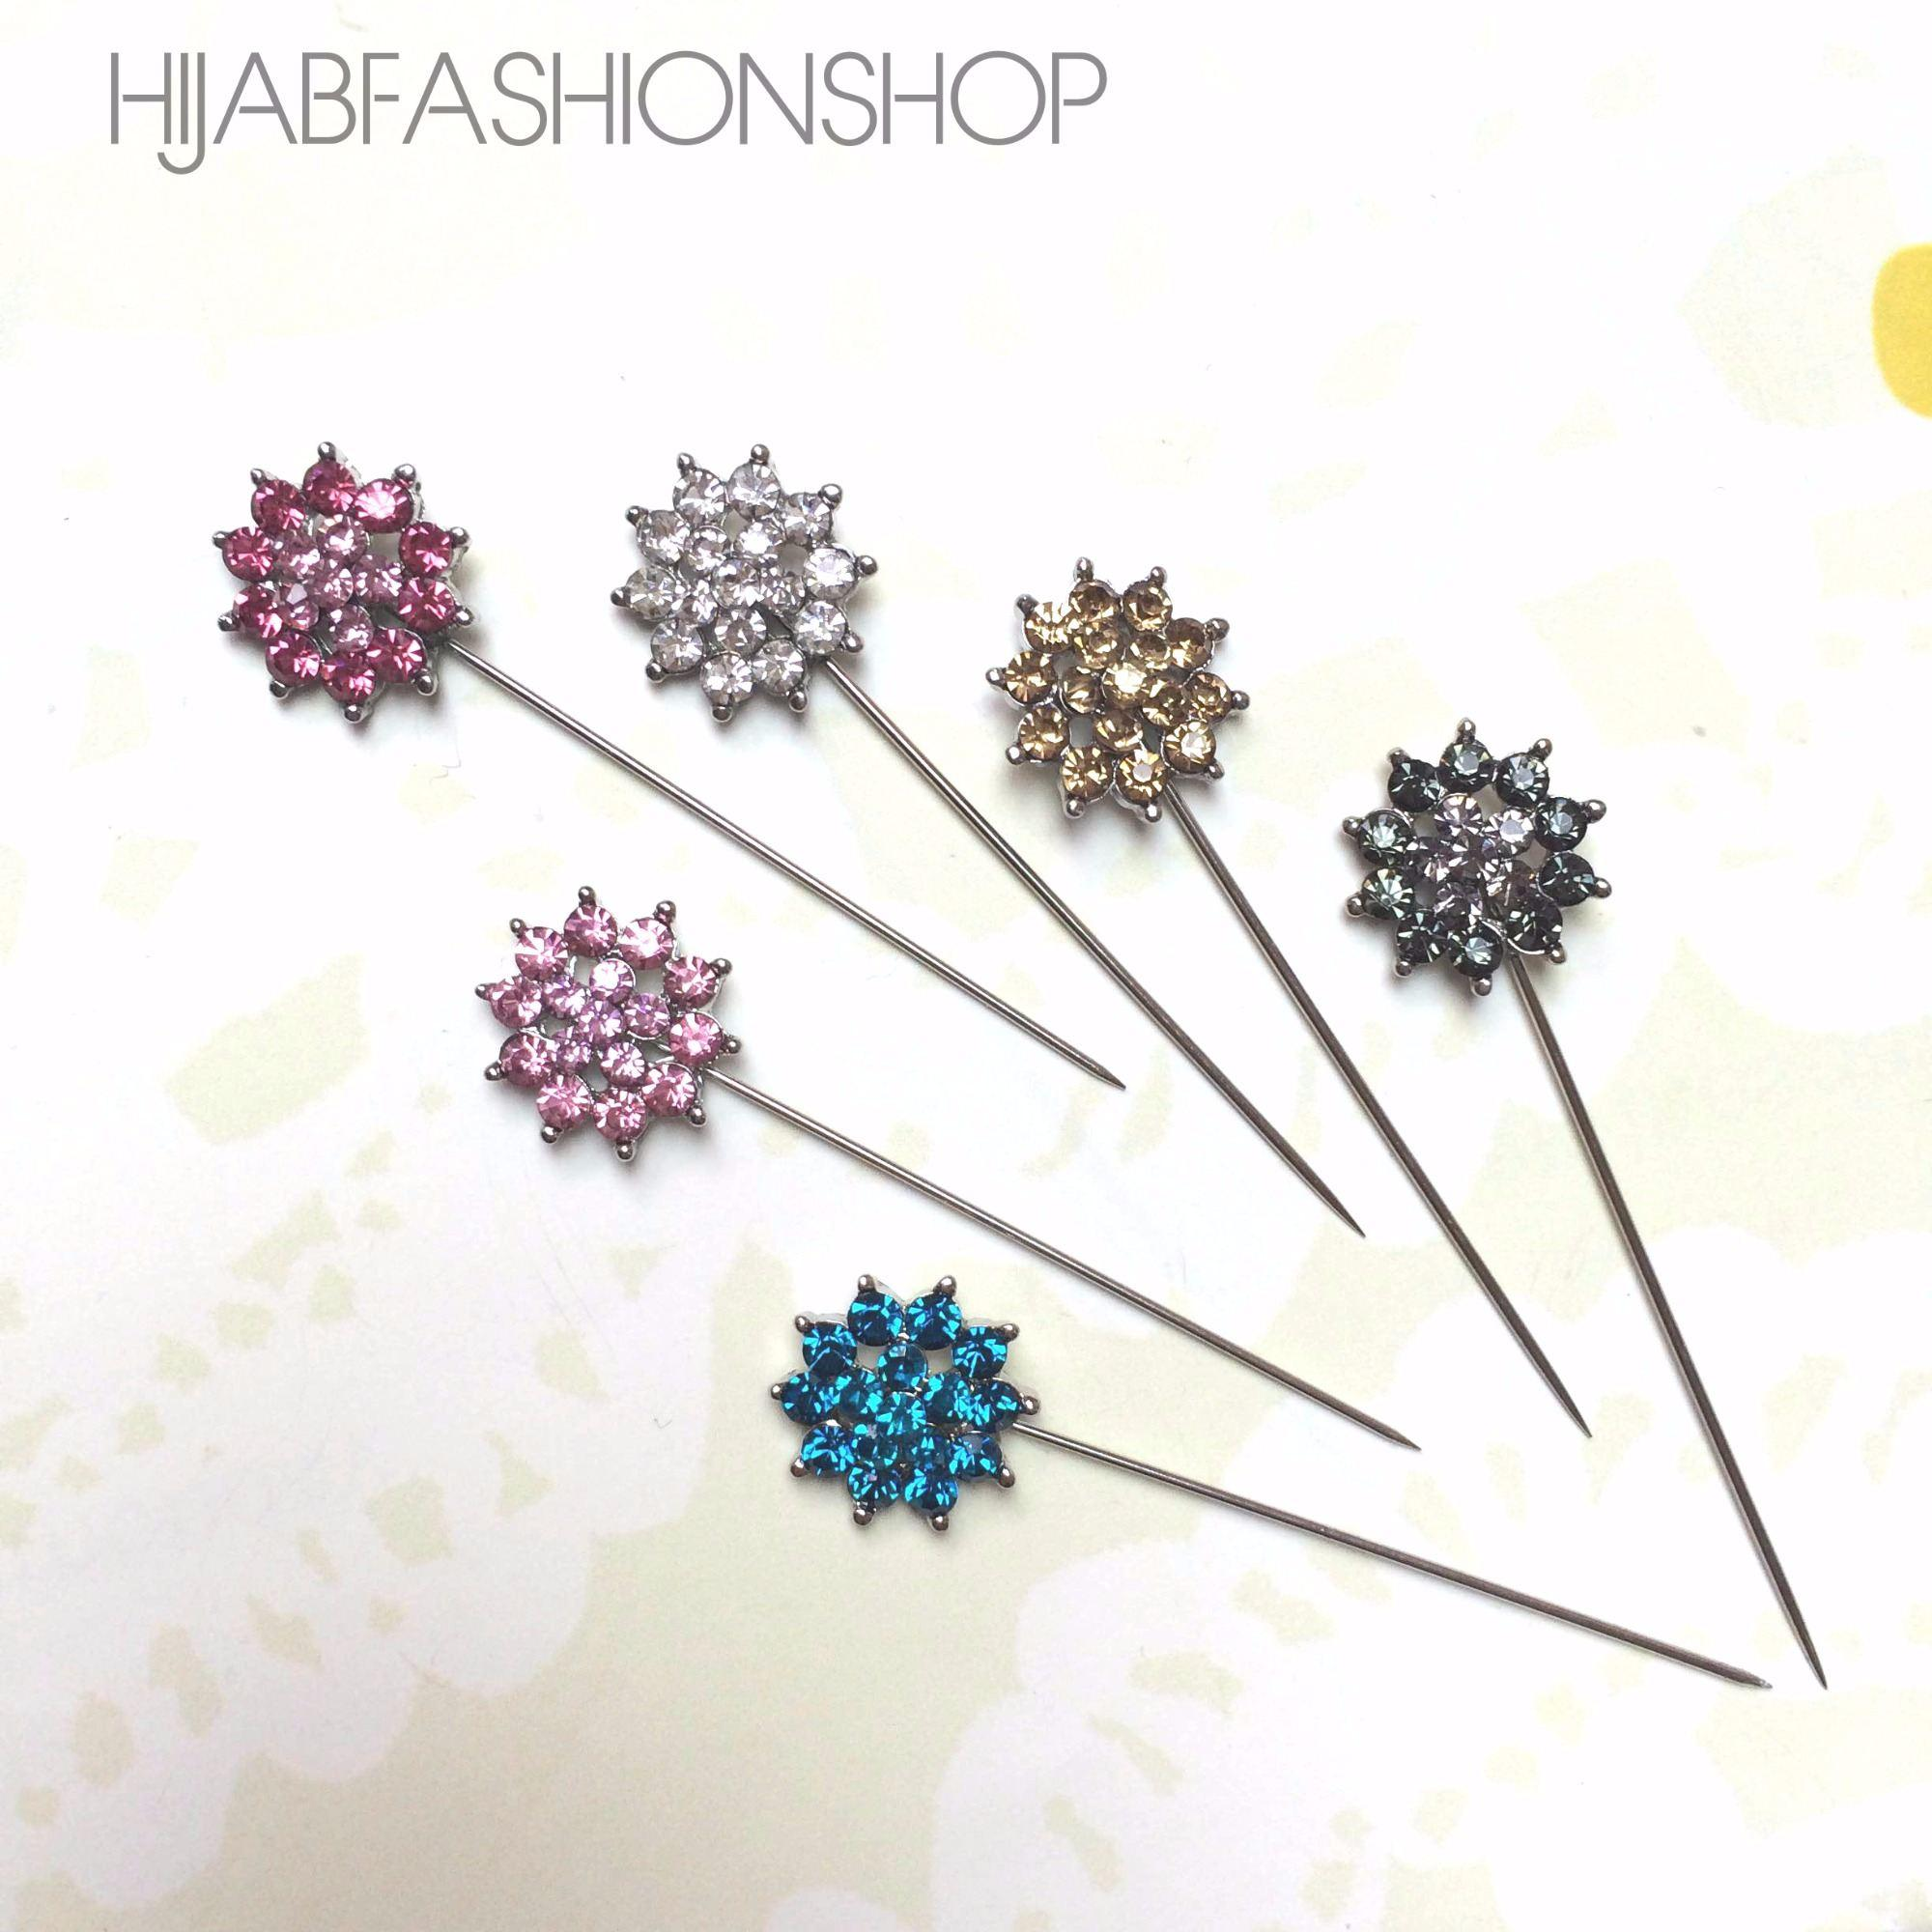 6 floral crystal hijab pins in variety of colours